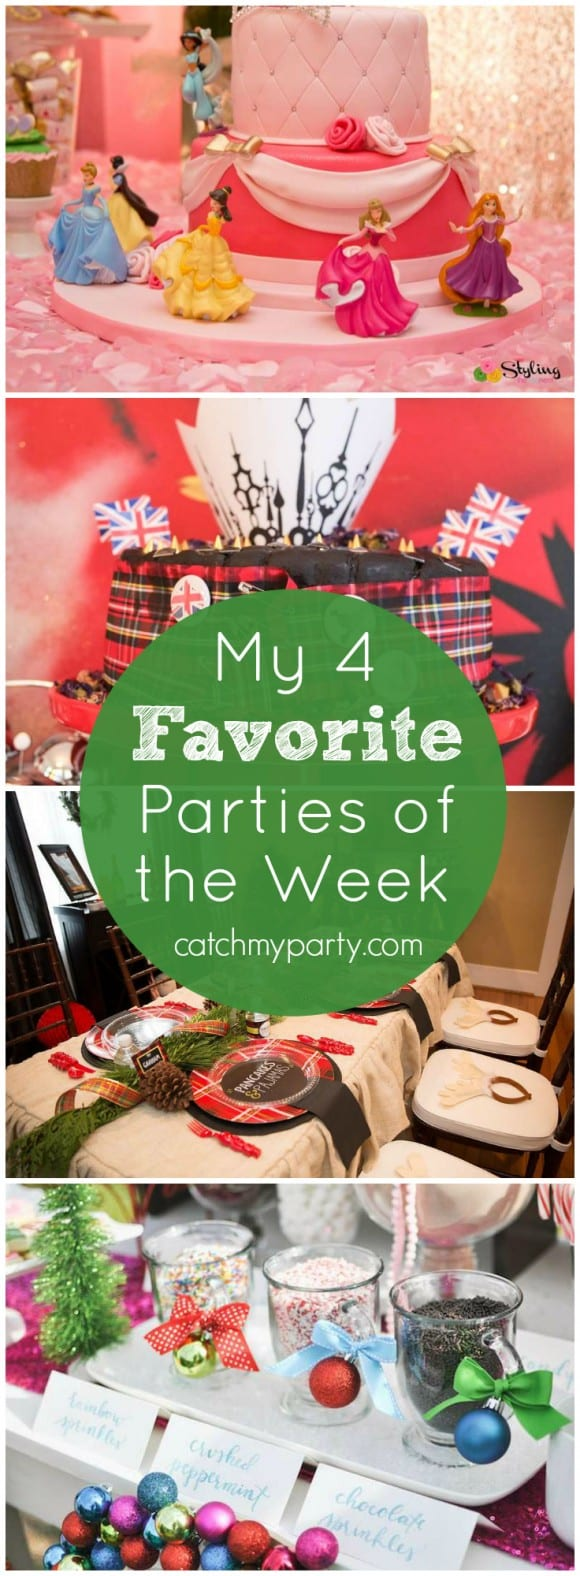 My 4 favorite parties of the week include a Pancakes and PJs party, Disney Princesses birthday party, a glam New Year's Eve party, and a hot cocoa bar | CatchMyParty.com